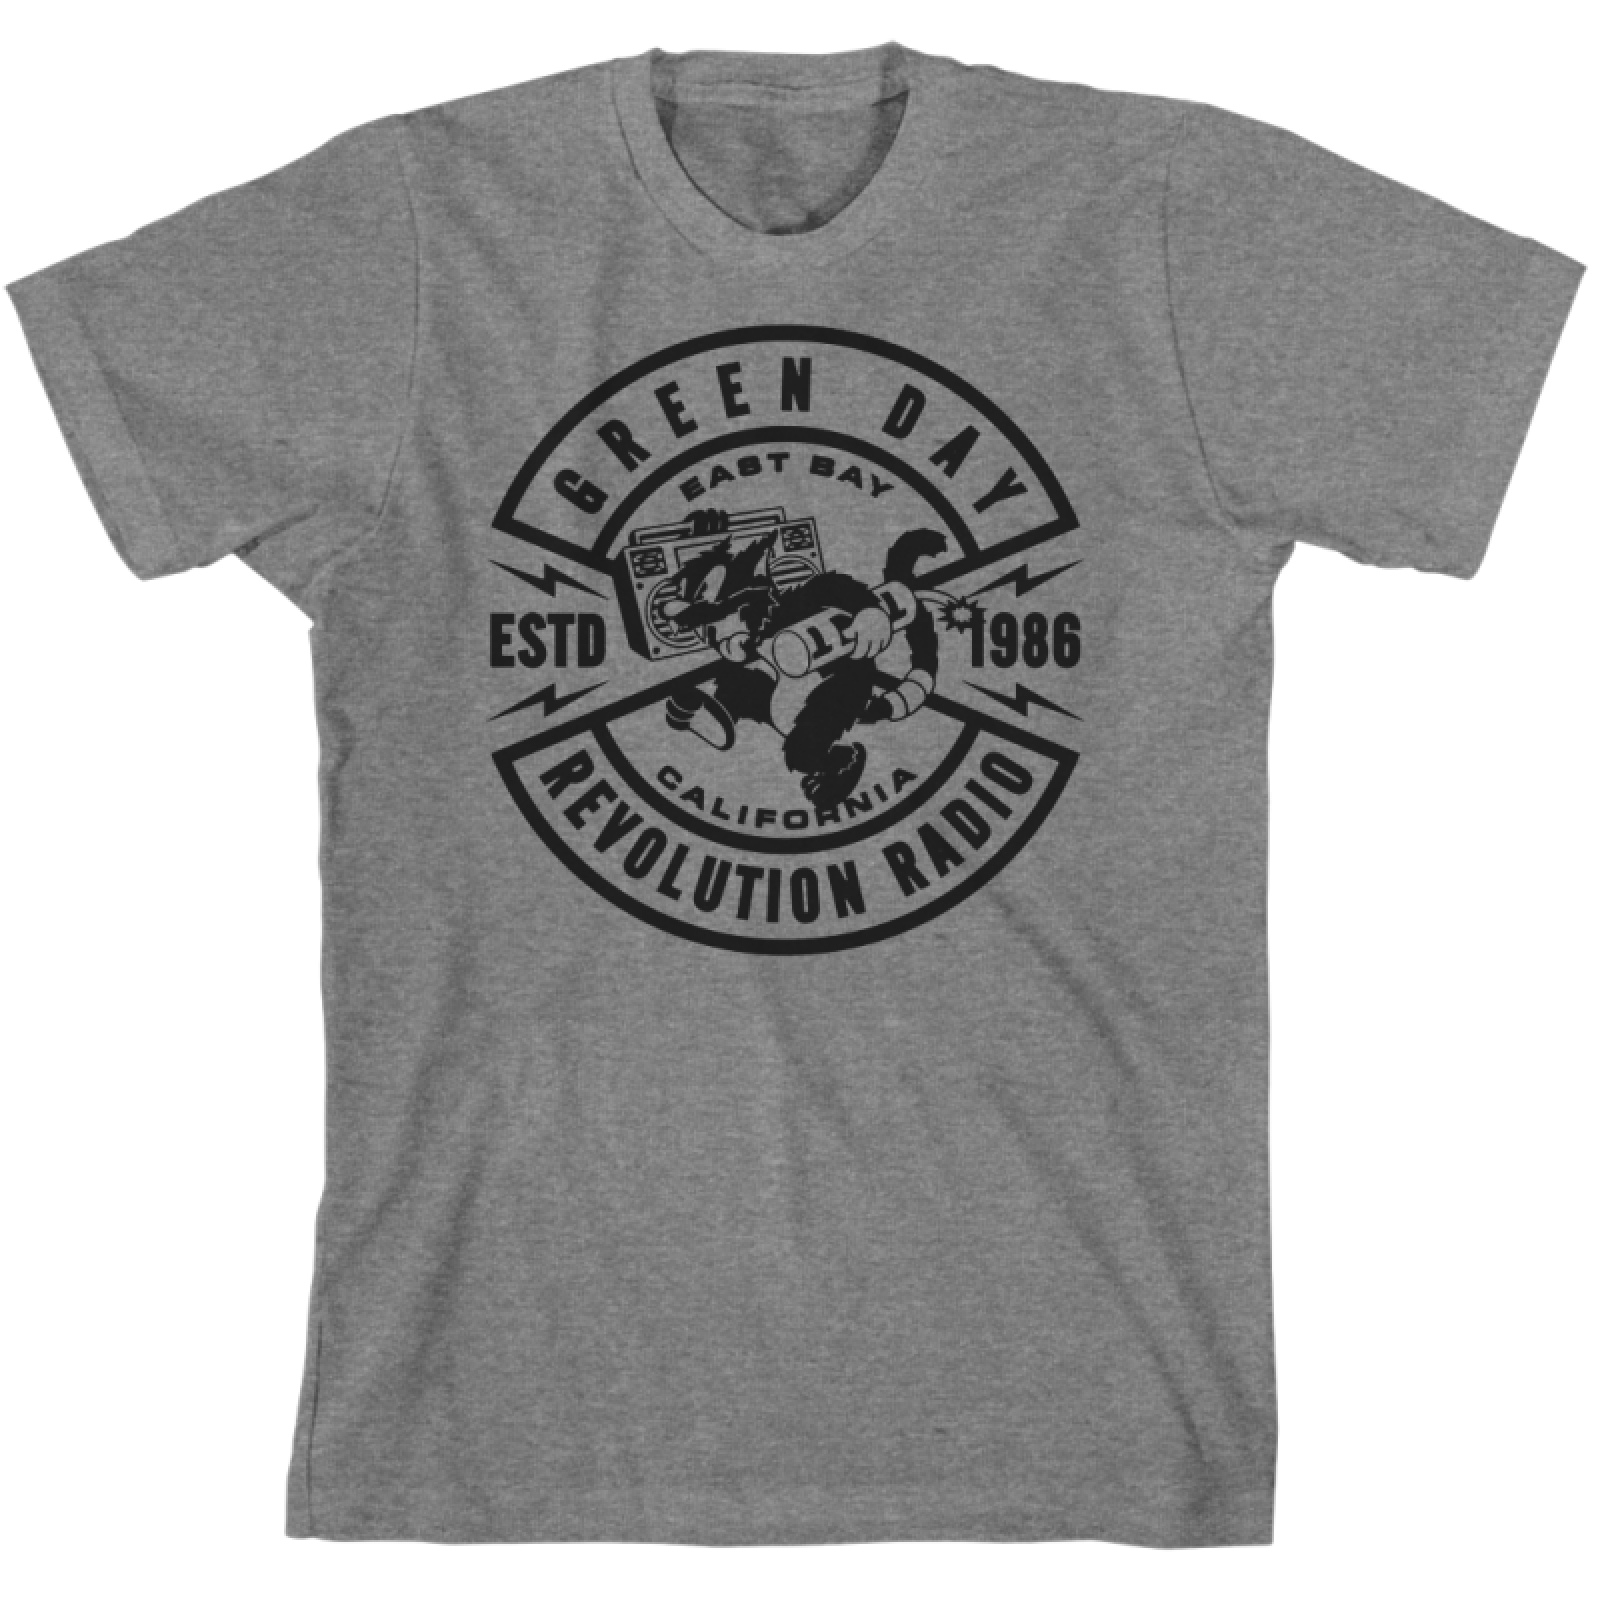 Slim fit heather grey t-shirt featuring TNT Cat graphic on the front.